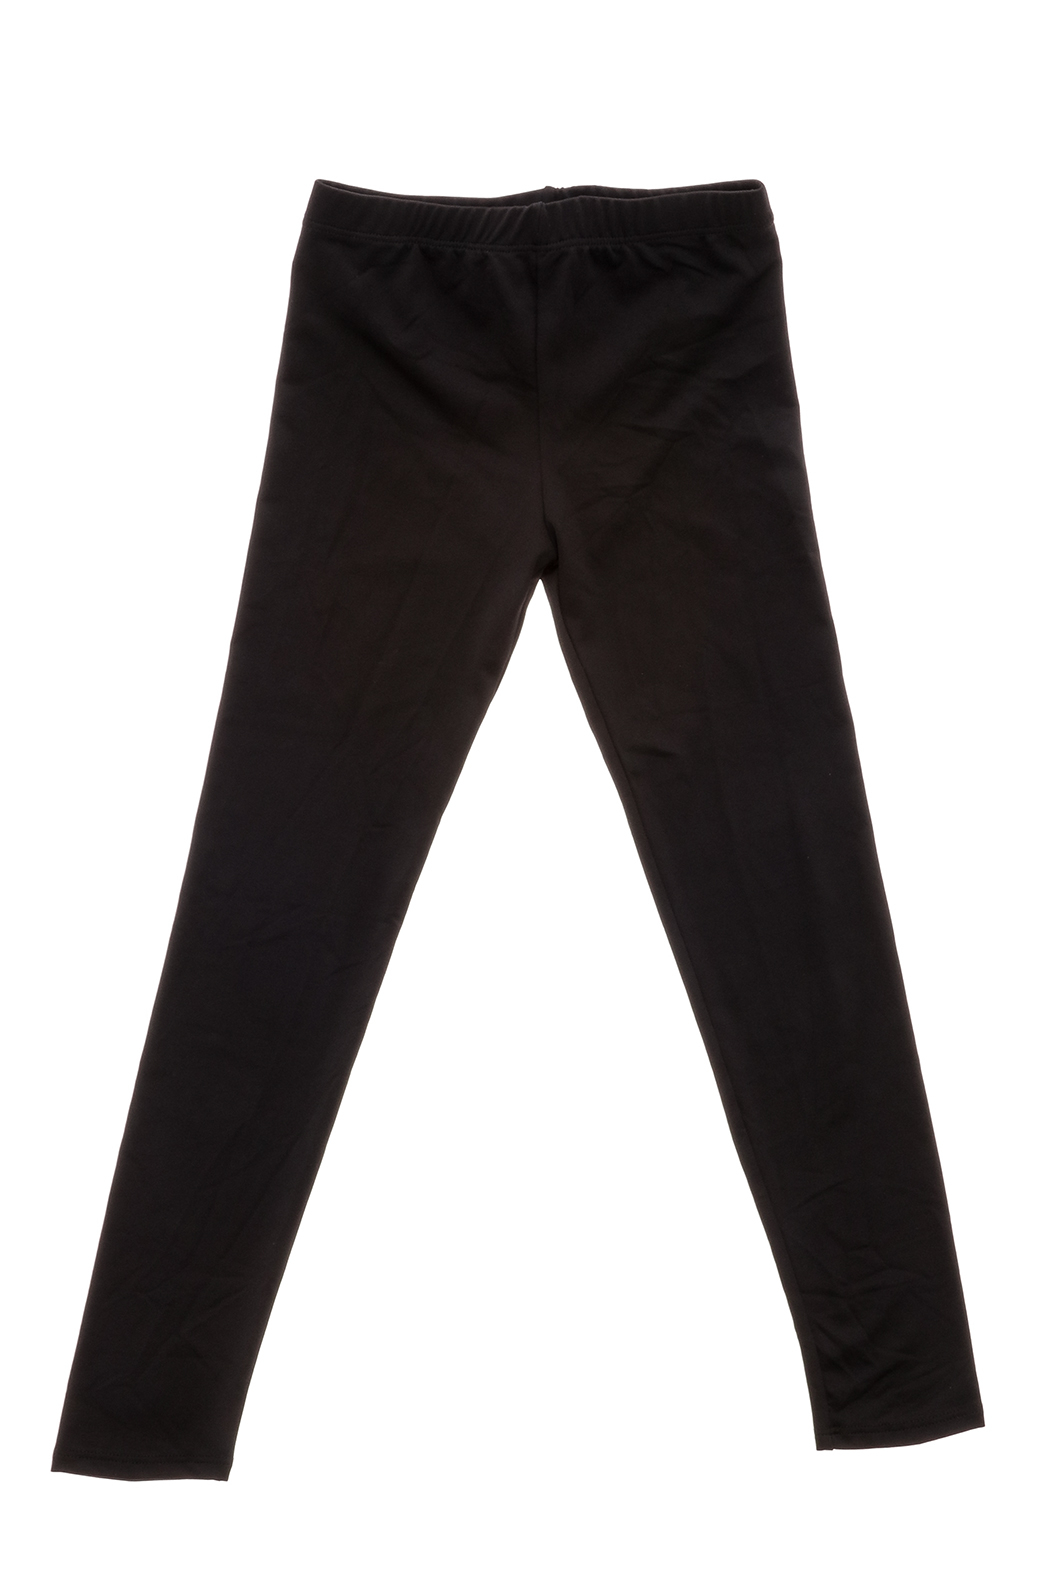 Rock Candy Classic Black Leggings - Front Cropped Image